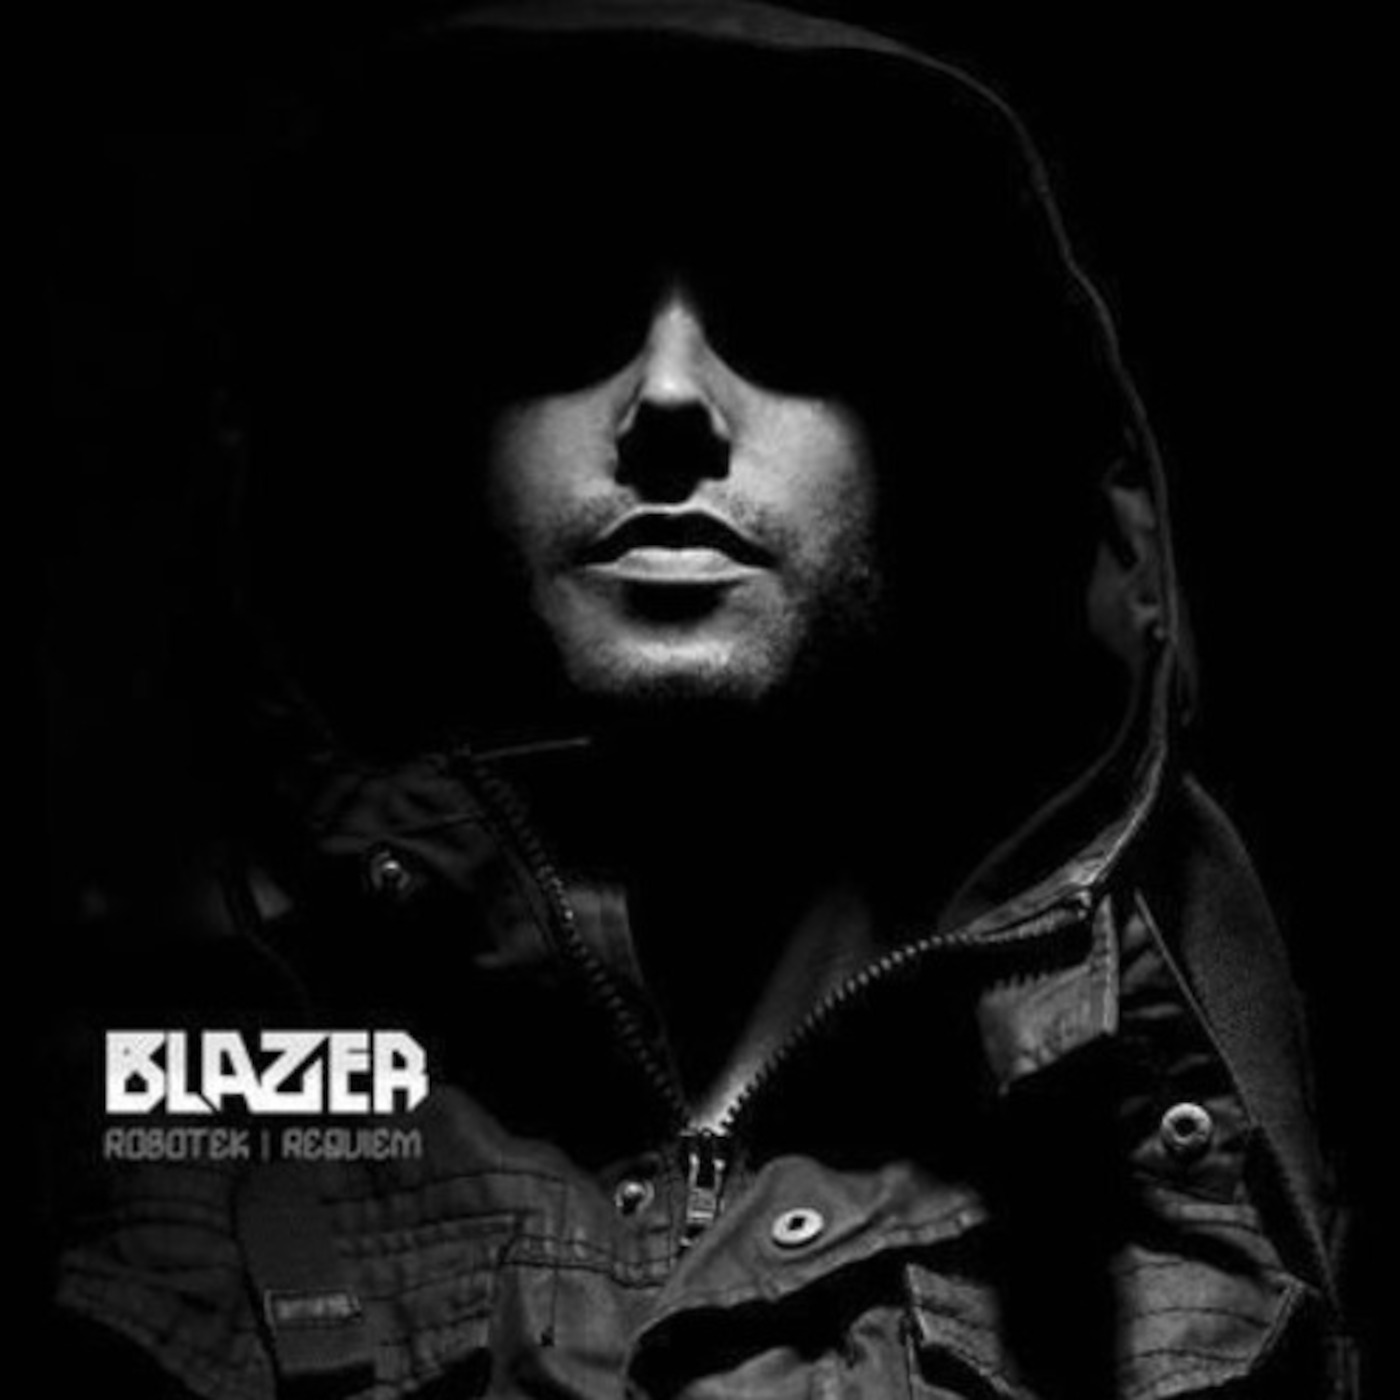 Blazer Podcast